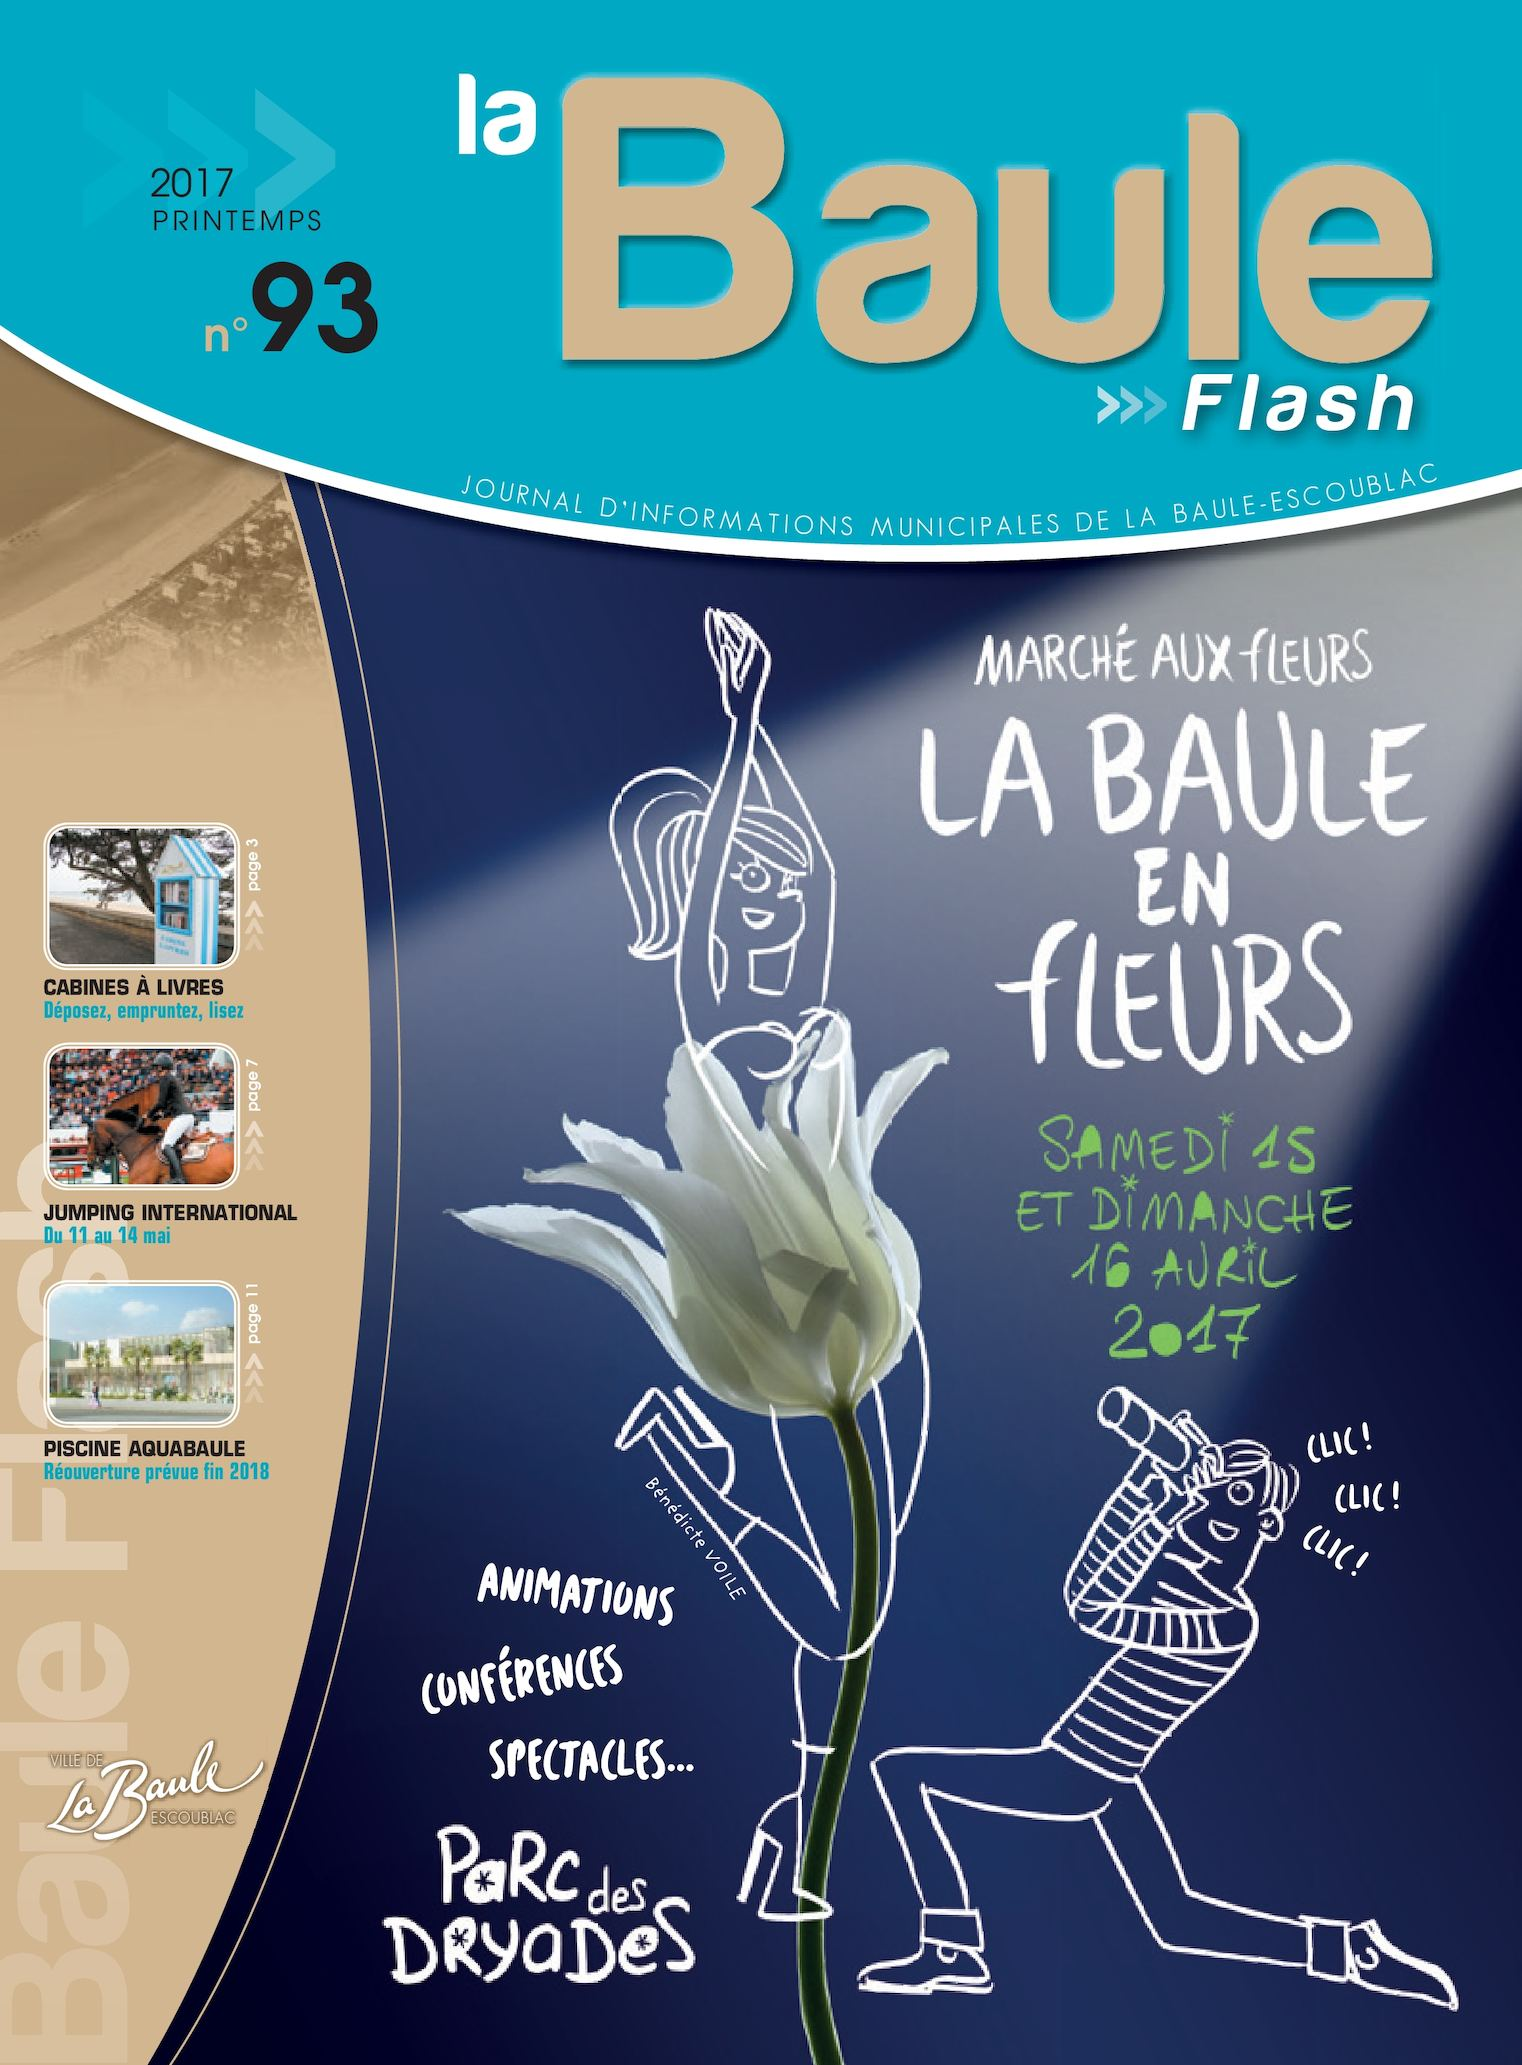 Calam o la baule flash 93 printemps 2017 for Aquabaule piscine